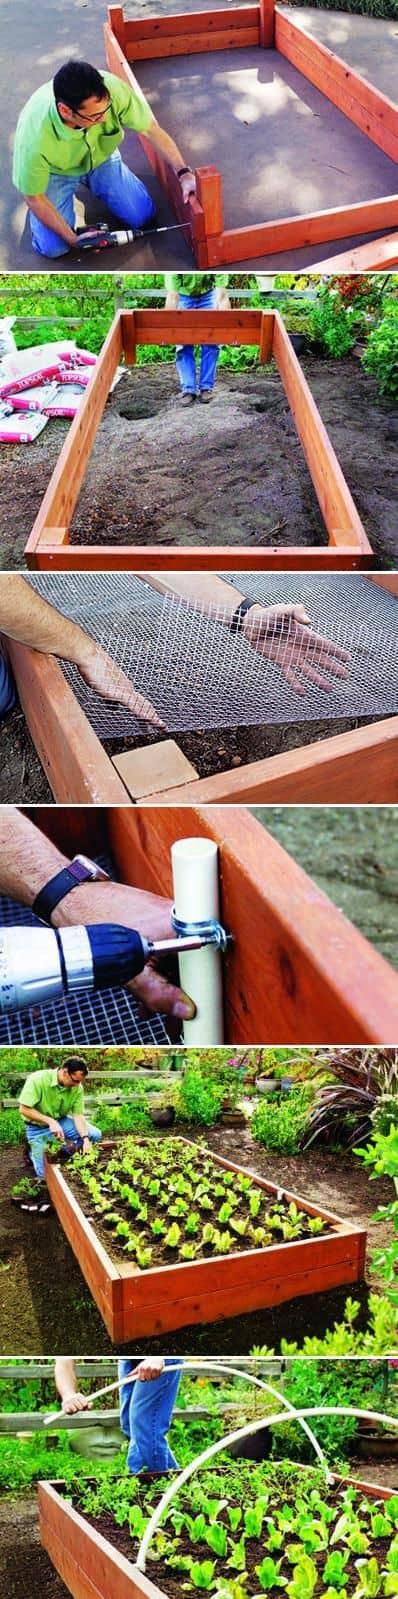 Raised Bed assemble   How to Build a Raised Vegetable Garden Bed   39+ Simple & Cheap Raised Vegetable Garden Bed Ideas - farmfoodfamily.com